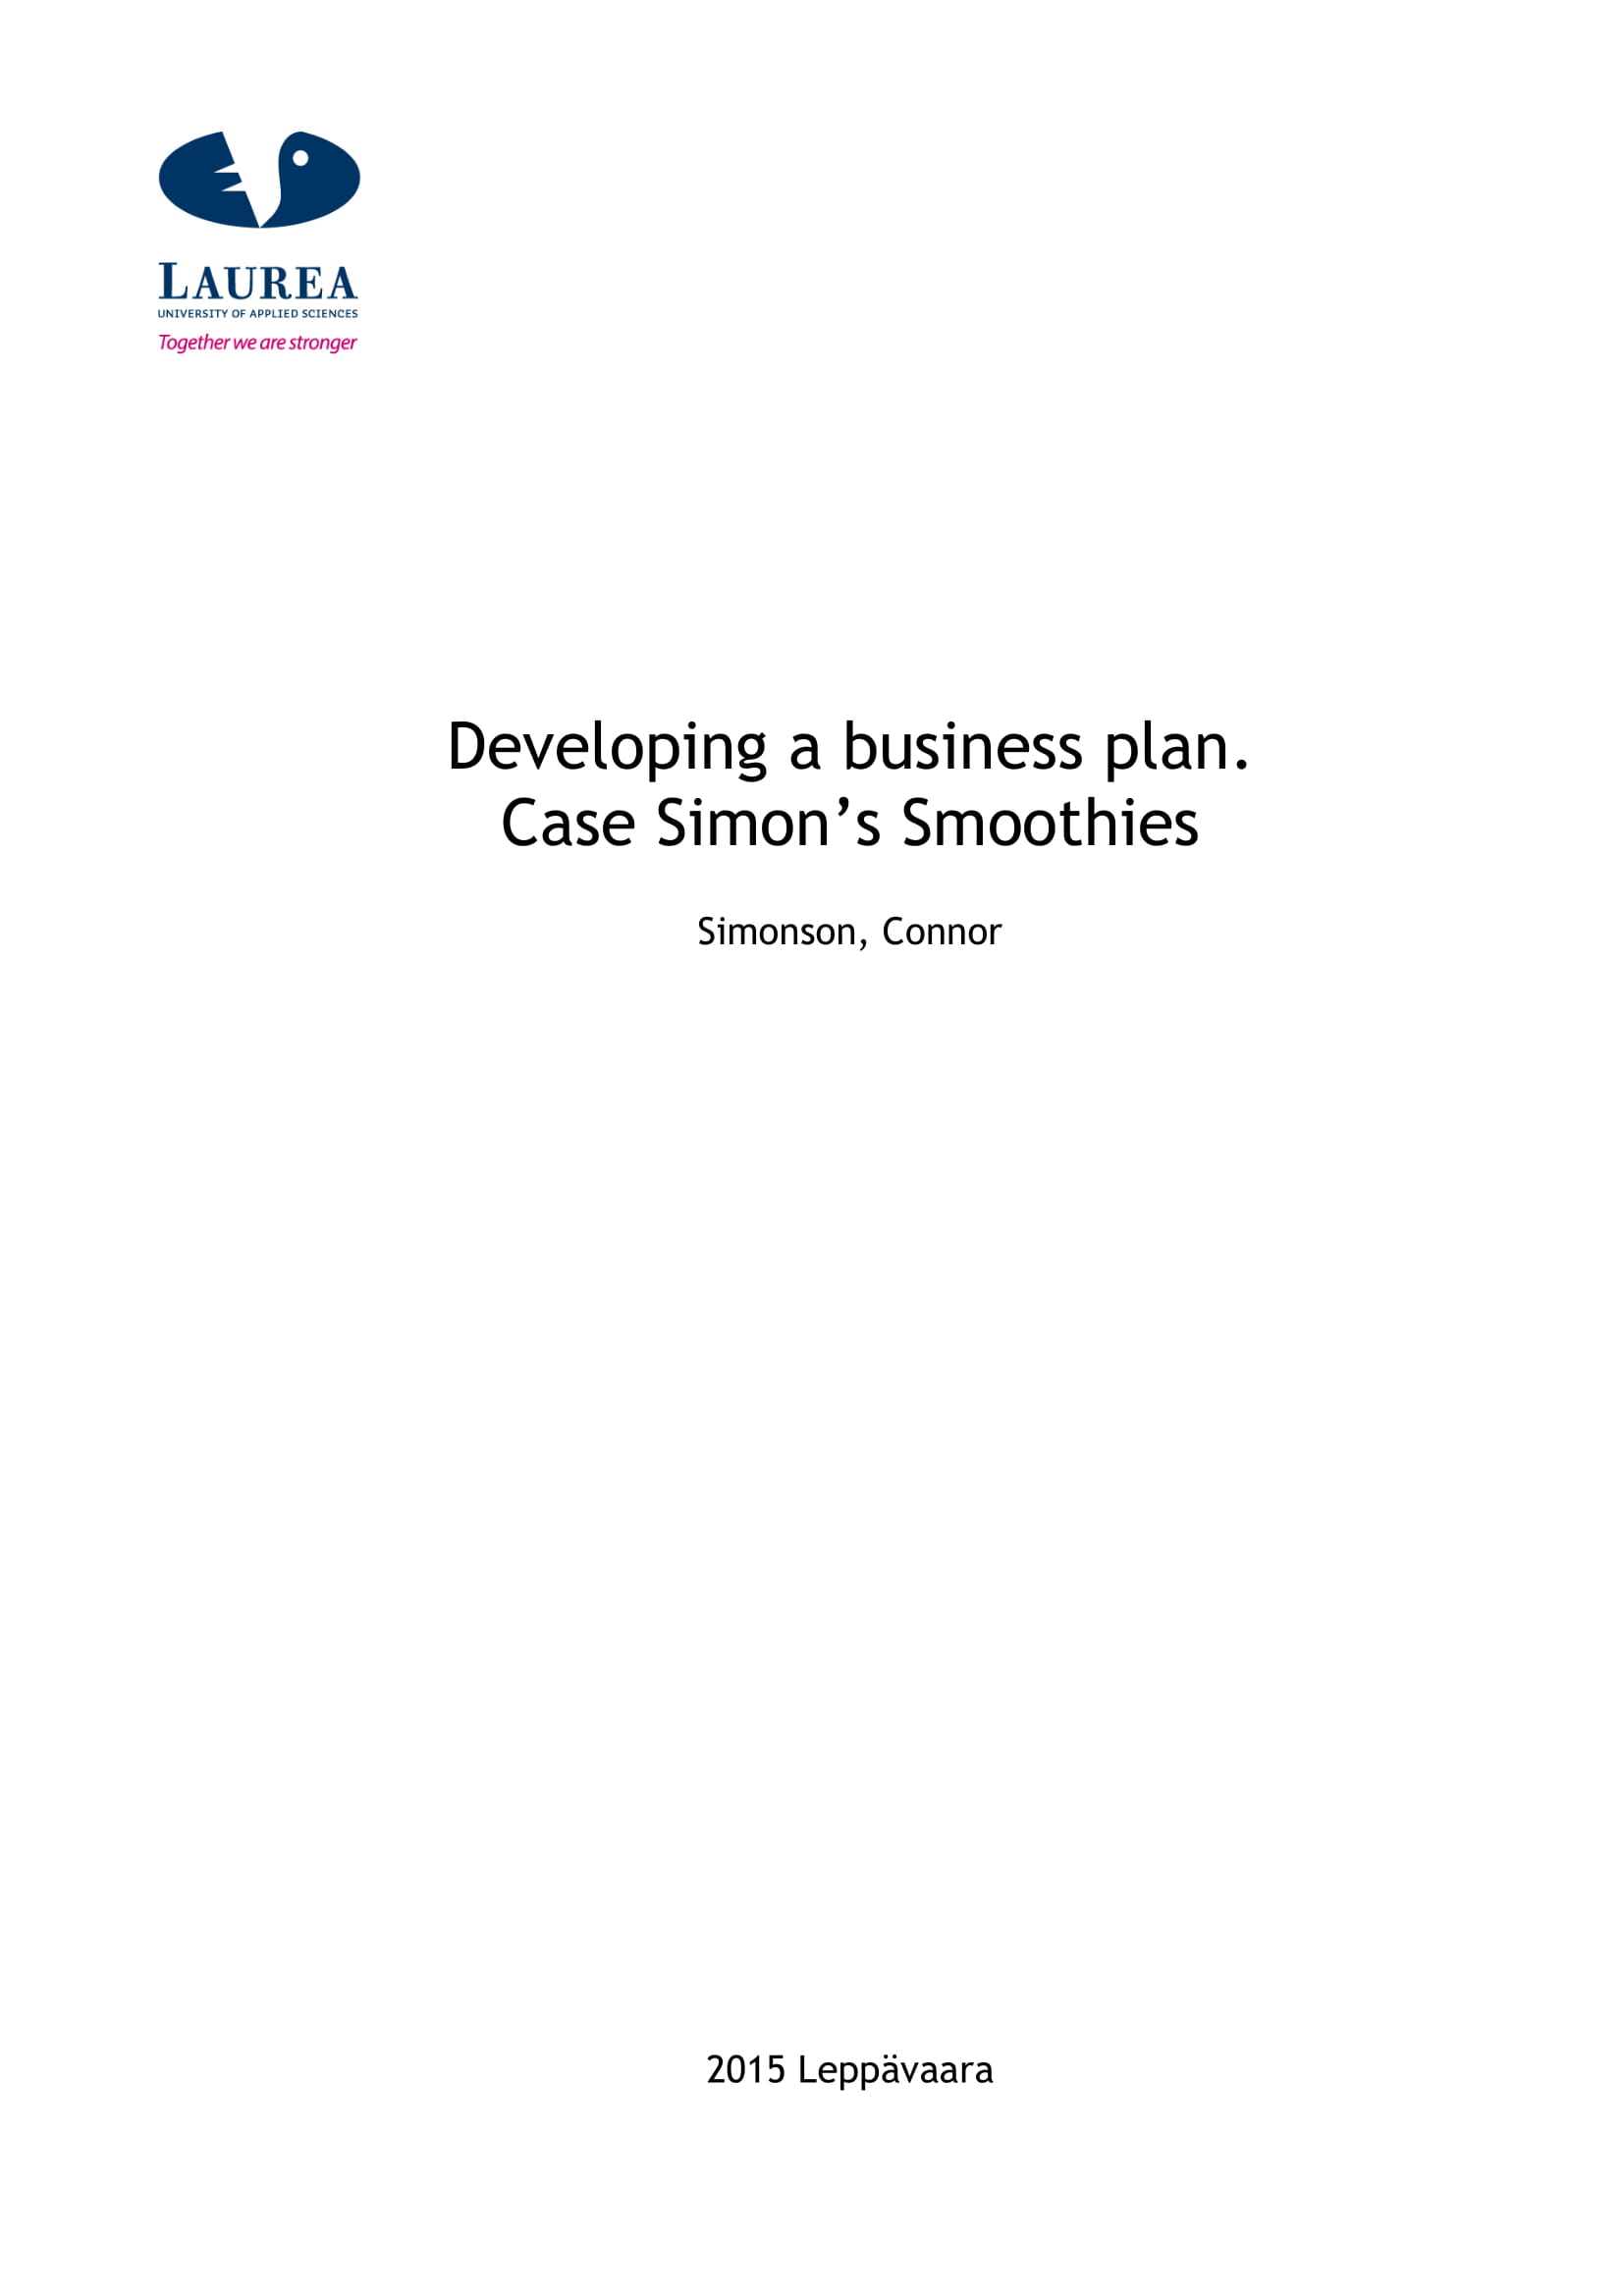 example of a business case proposal